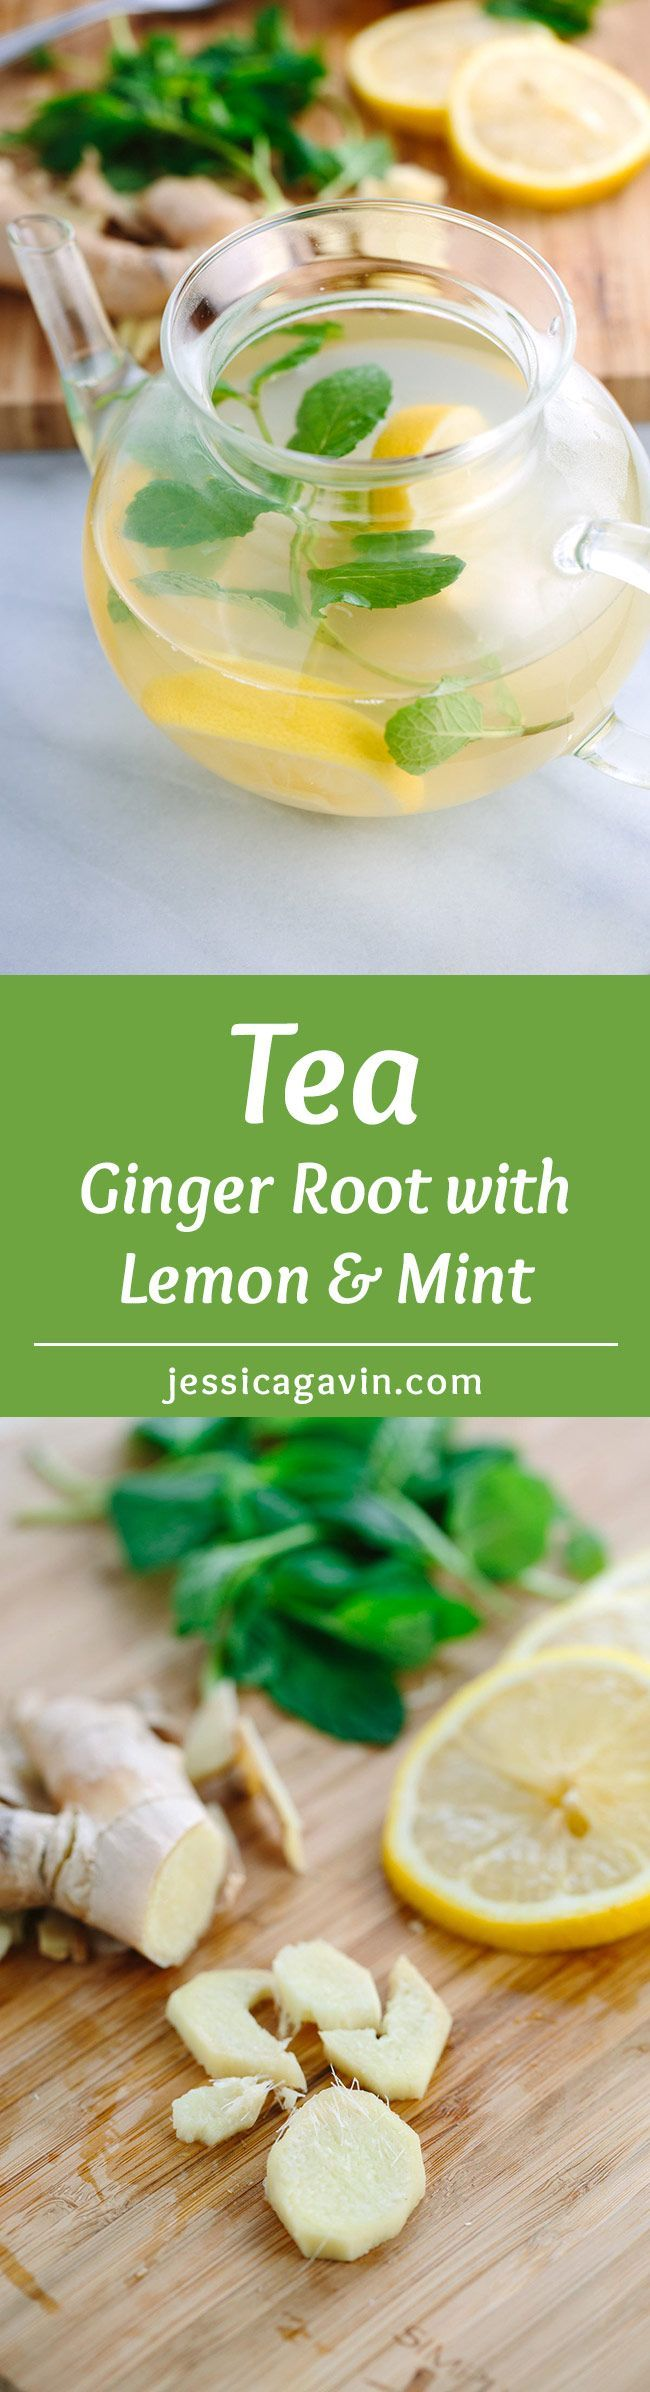 how to prepare ginger root tea